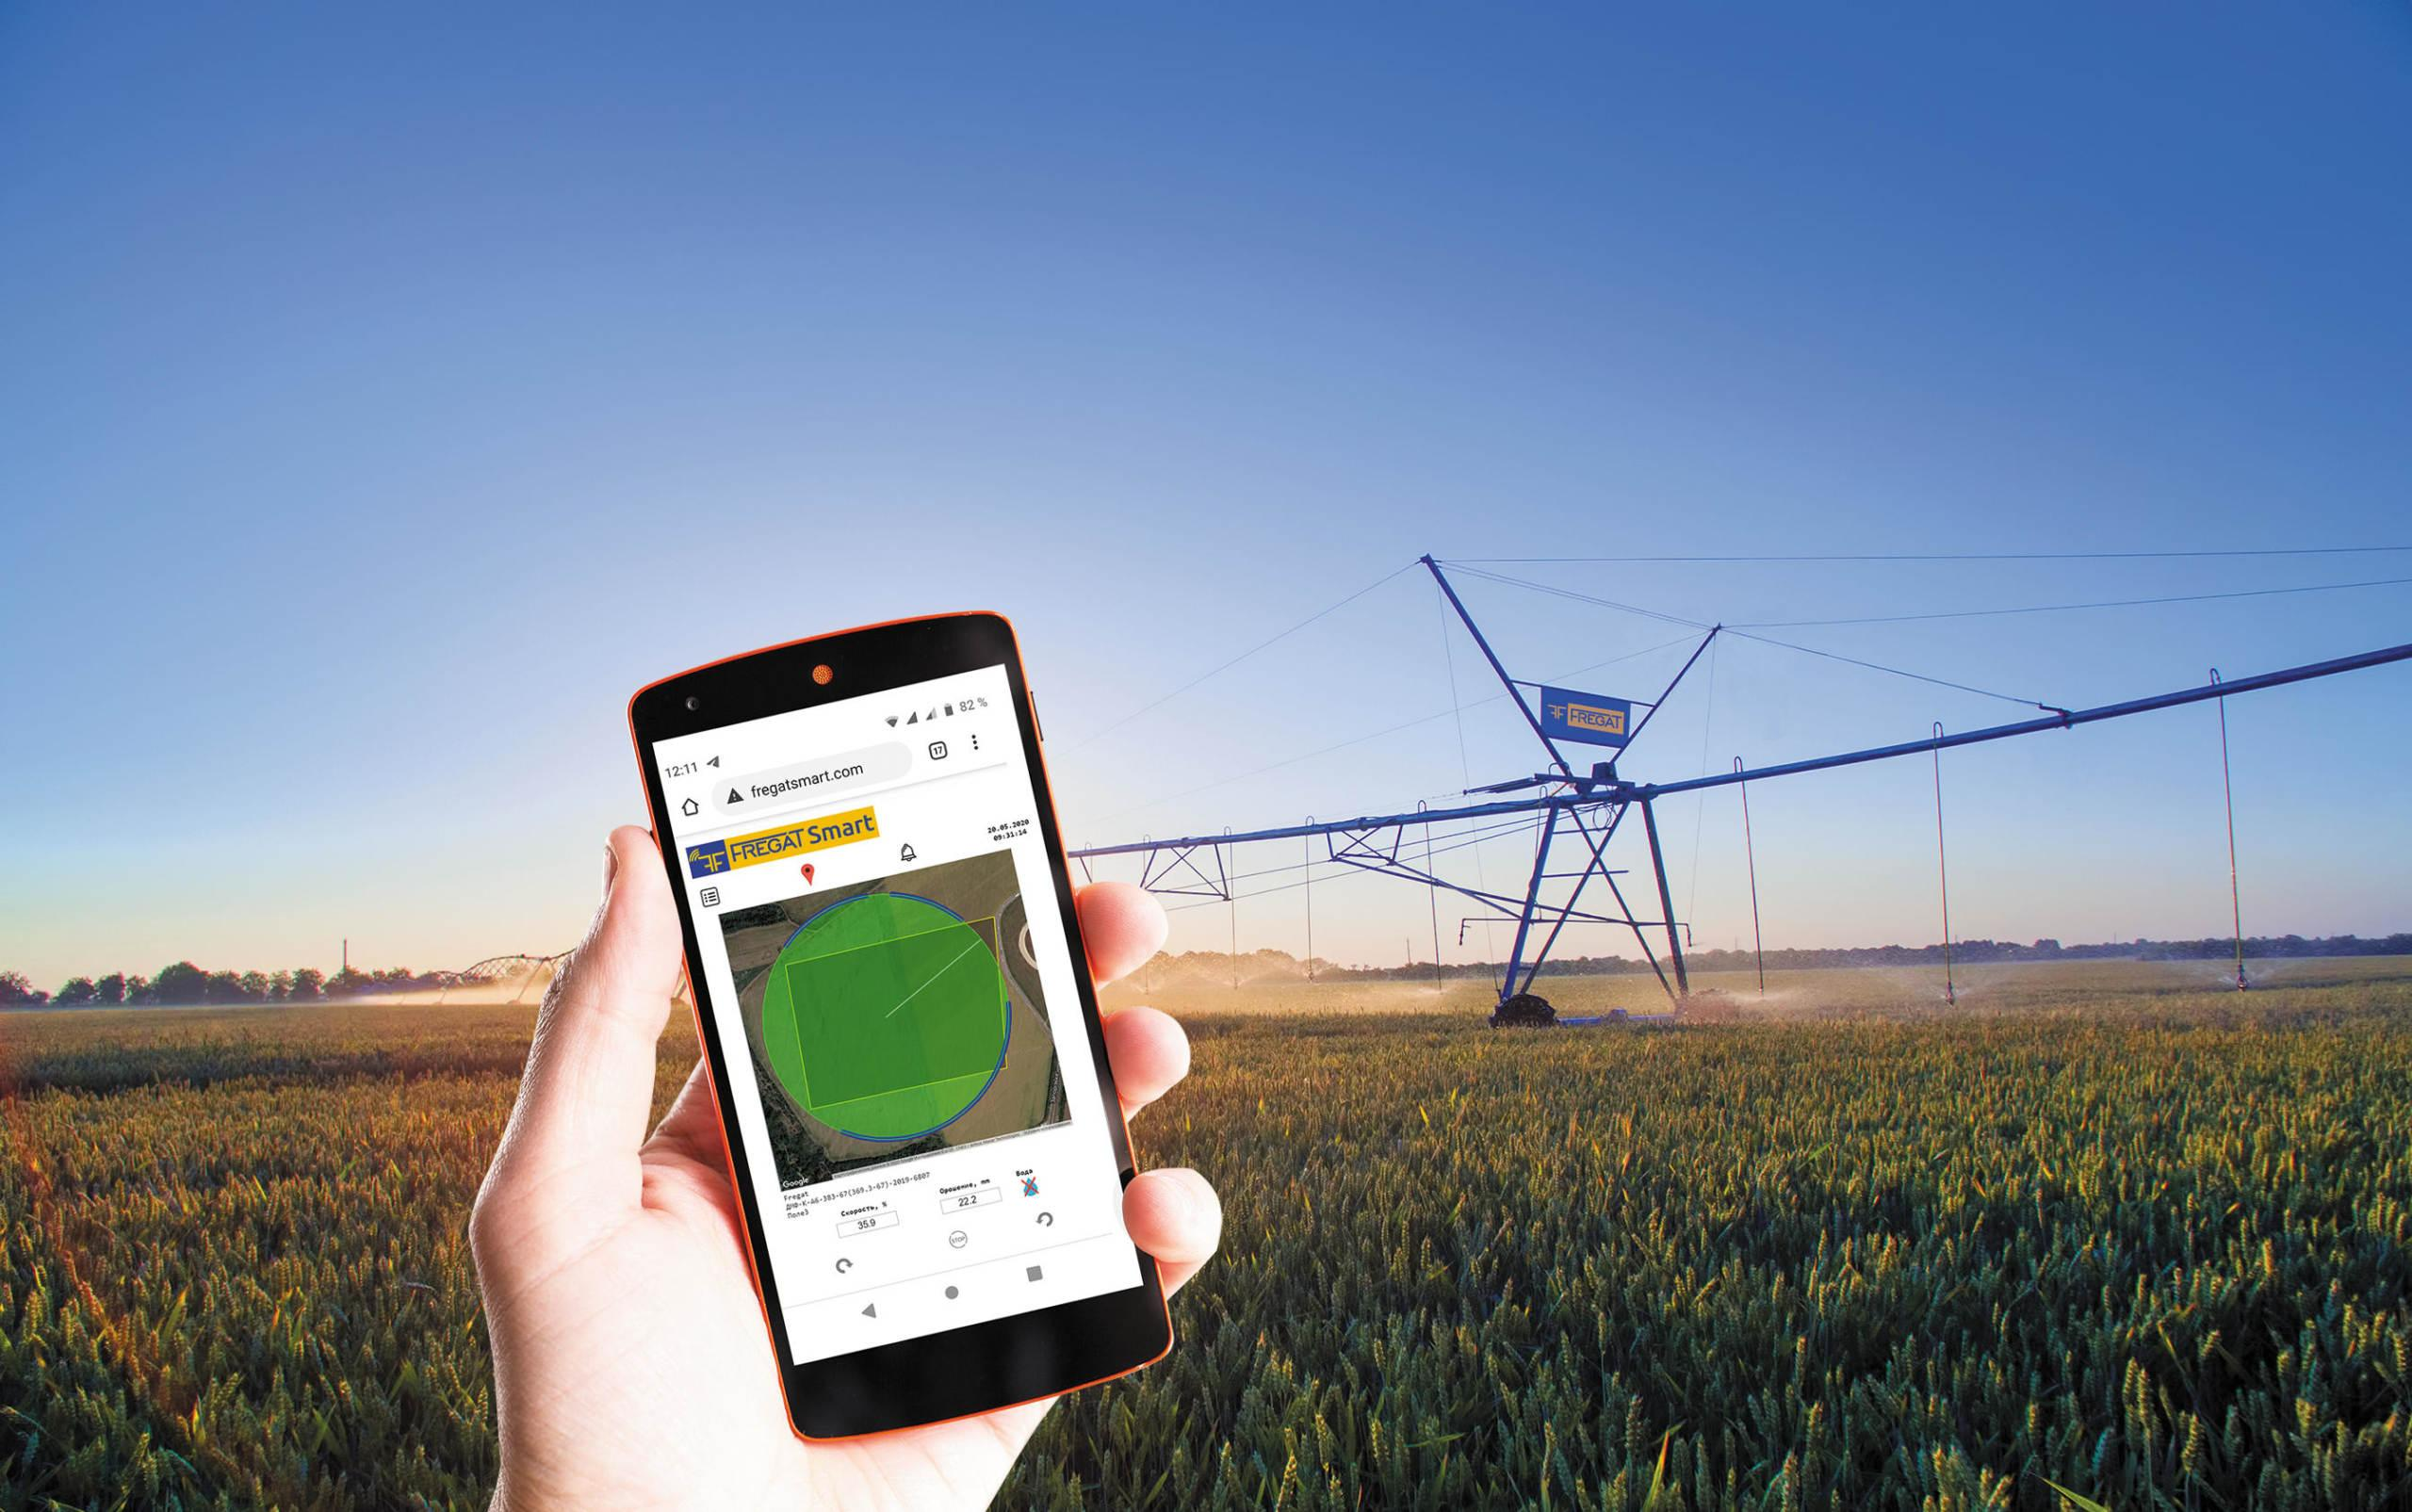 Now you can control irrigation from your smartphone!